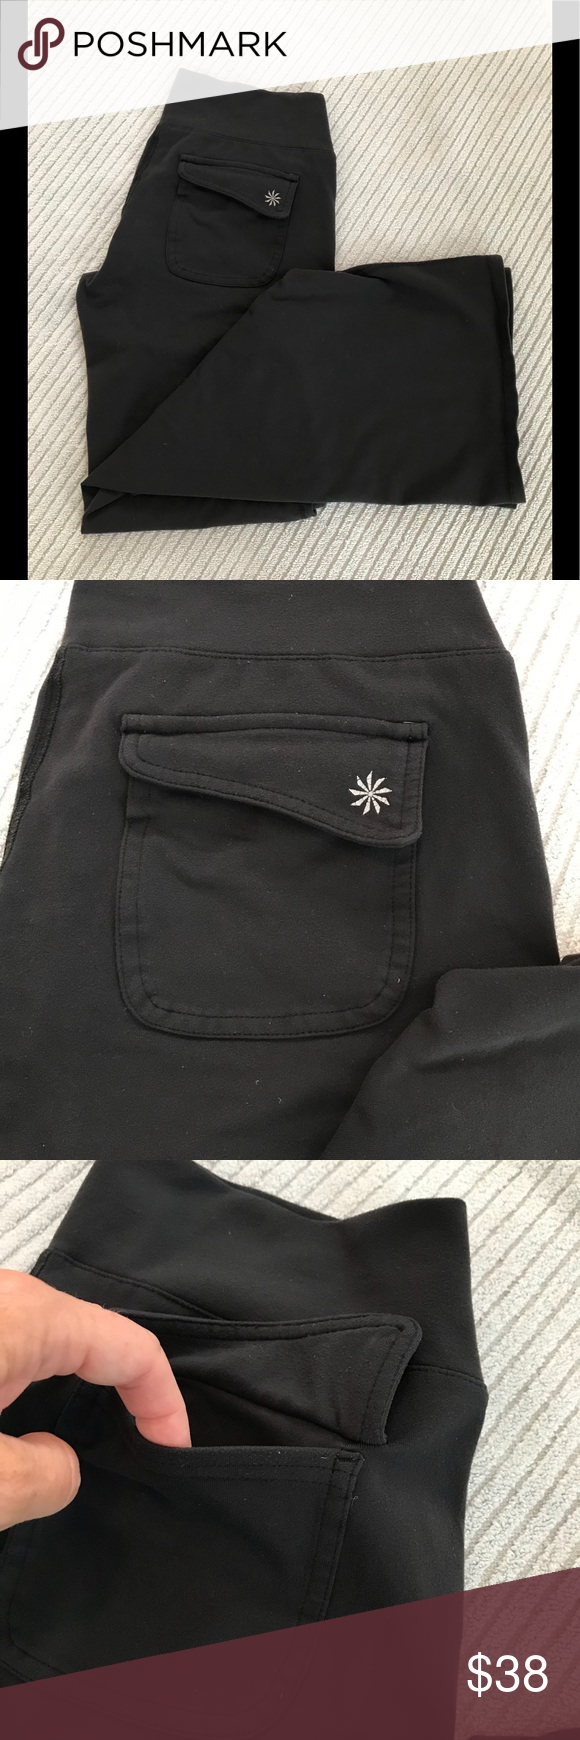 """d6a52ebc4f820 Athleta Fusion Flare Flap Pocket Yoga Pants Athleta fusion flare black wide  leg yoga workout pants With gusset and rear flap pockets. 3"""" wise waist  band."""